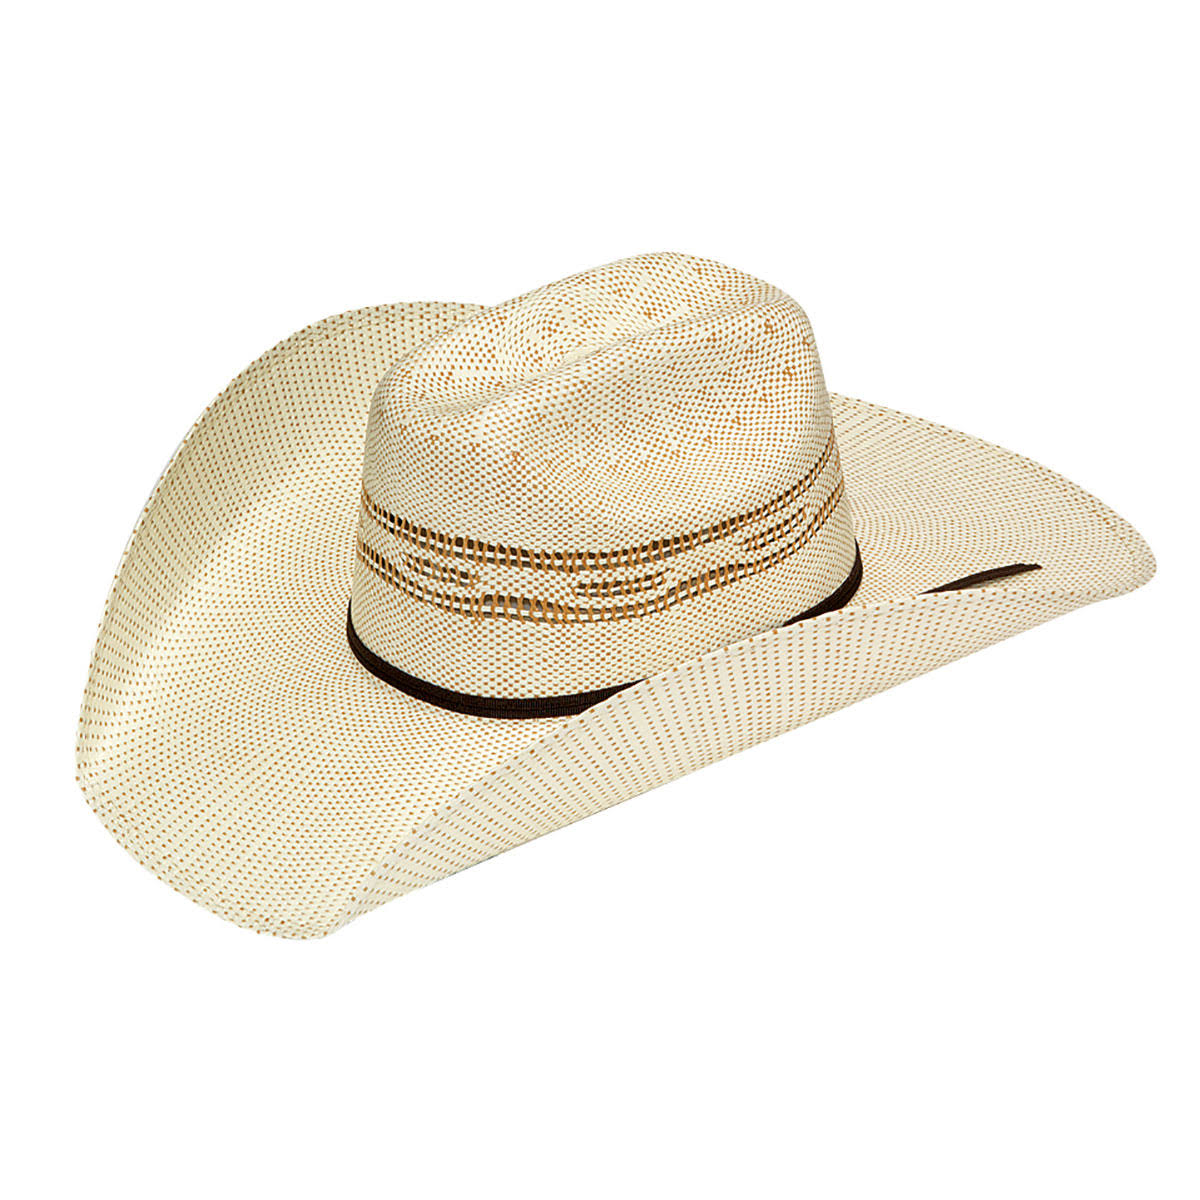 Twister Bangora Maverick Cowboy Hat - Natural/Tan